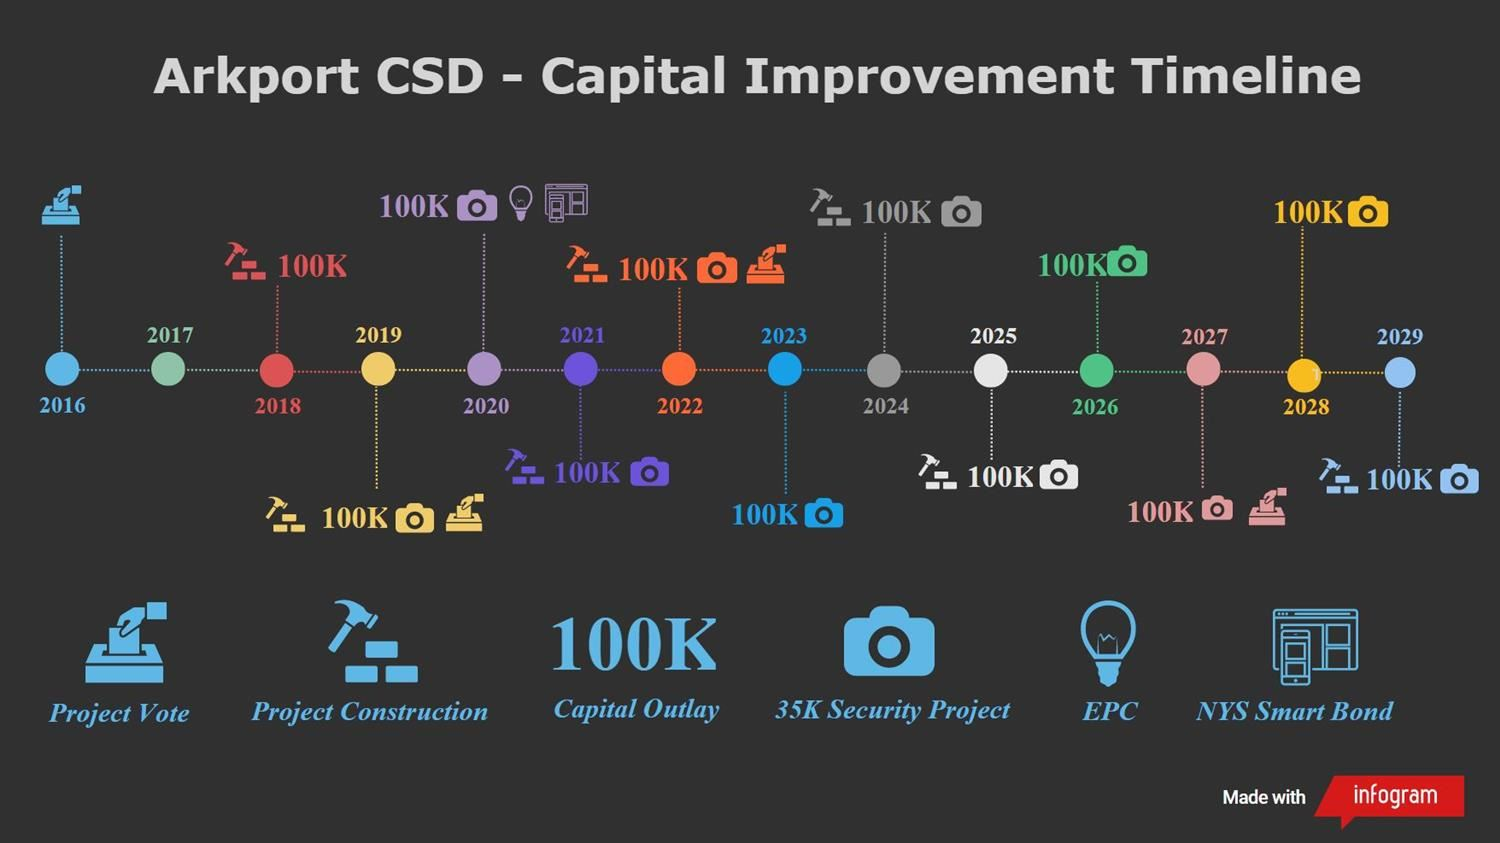 Capital Improvement Timeline